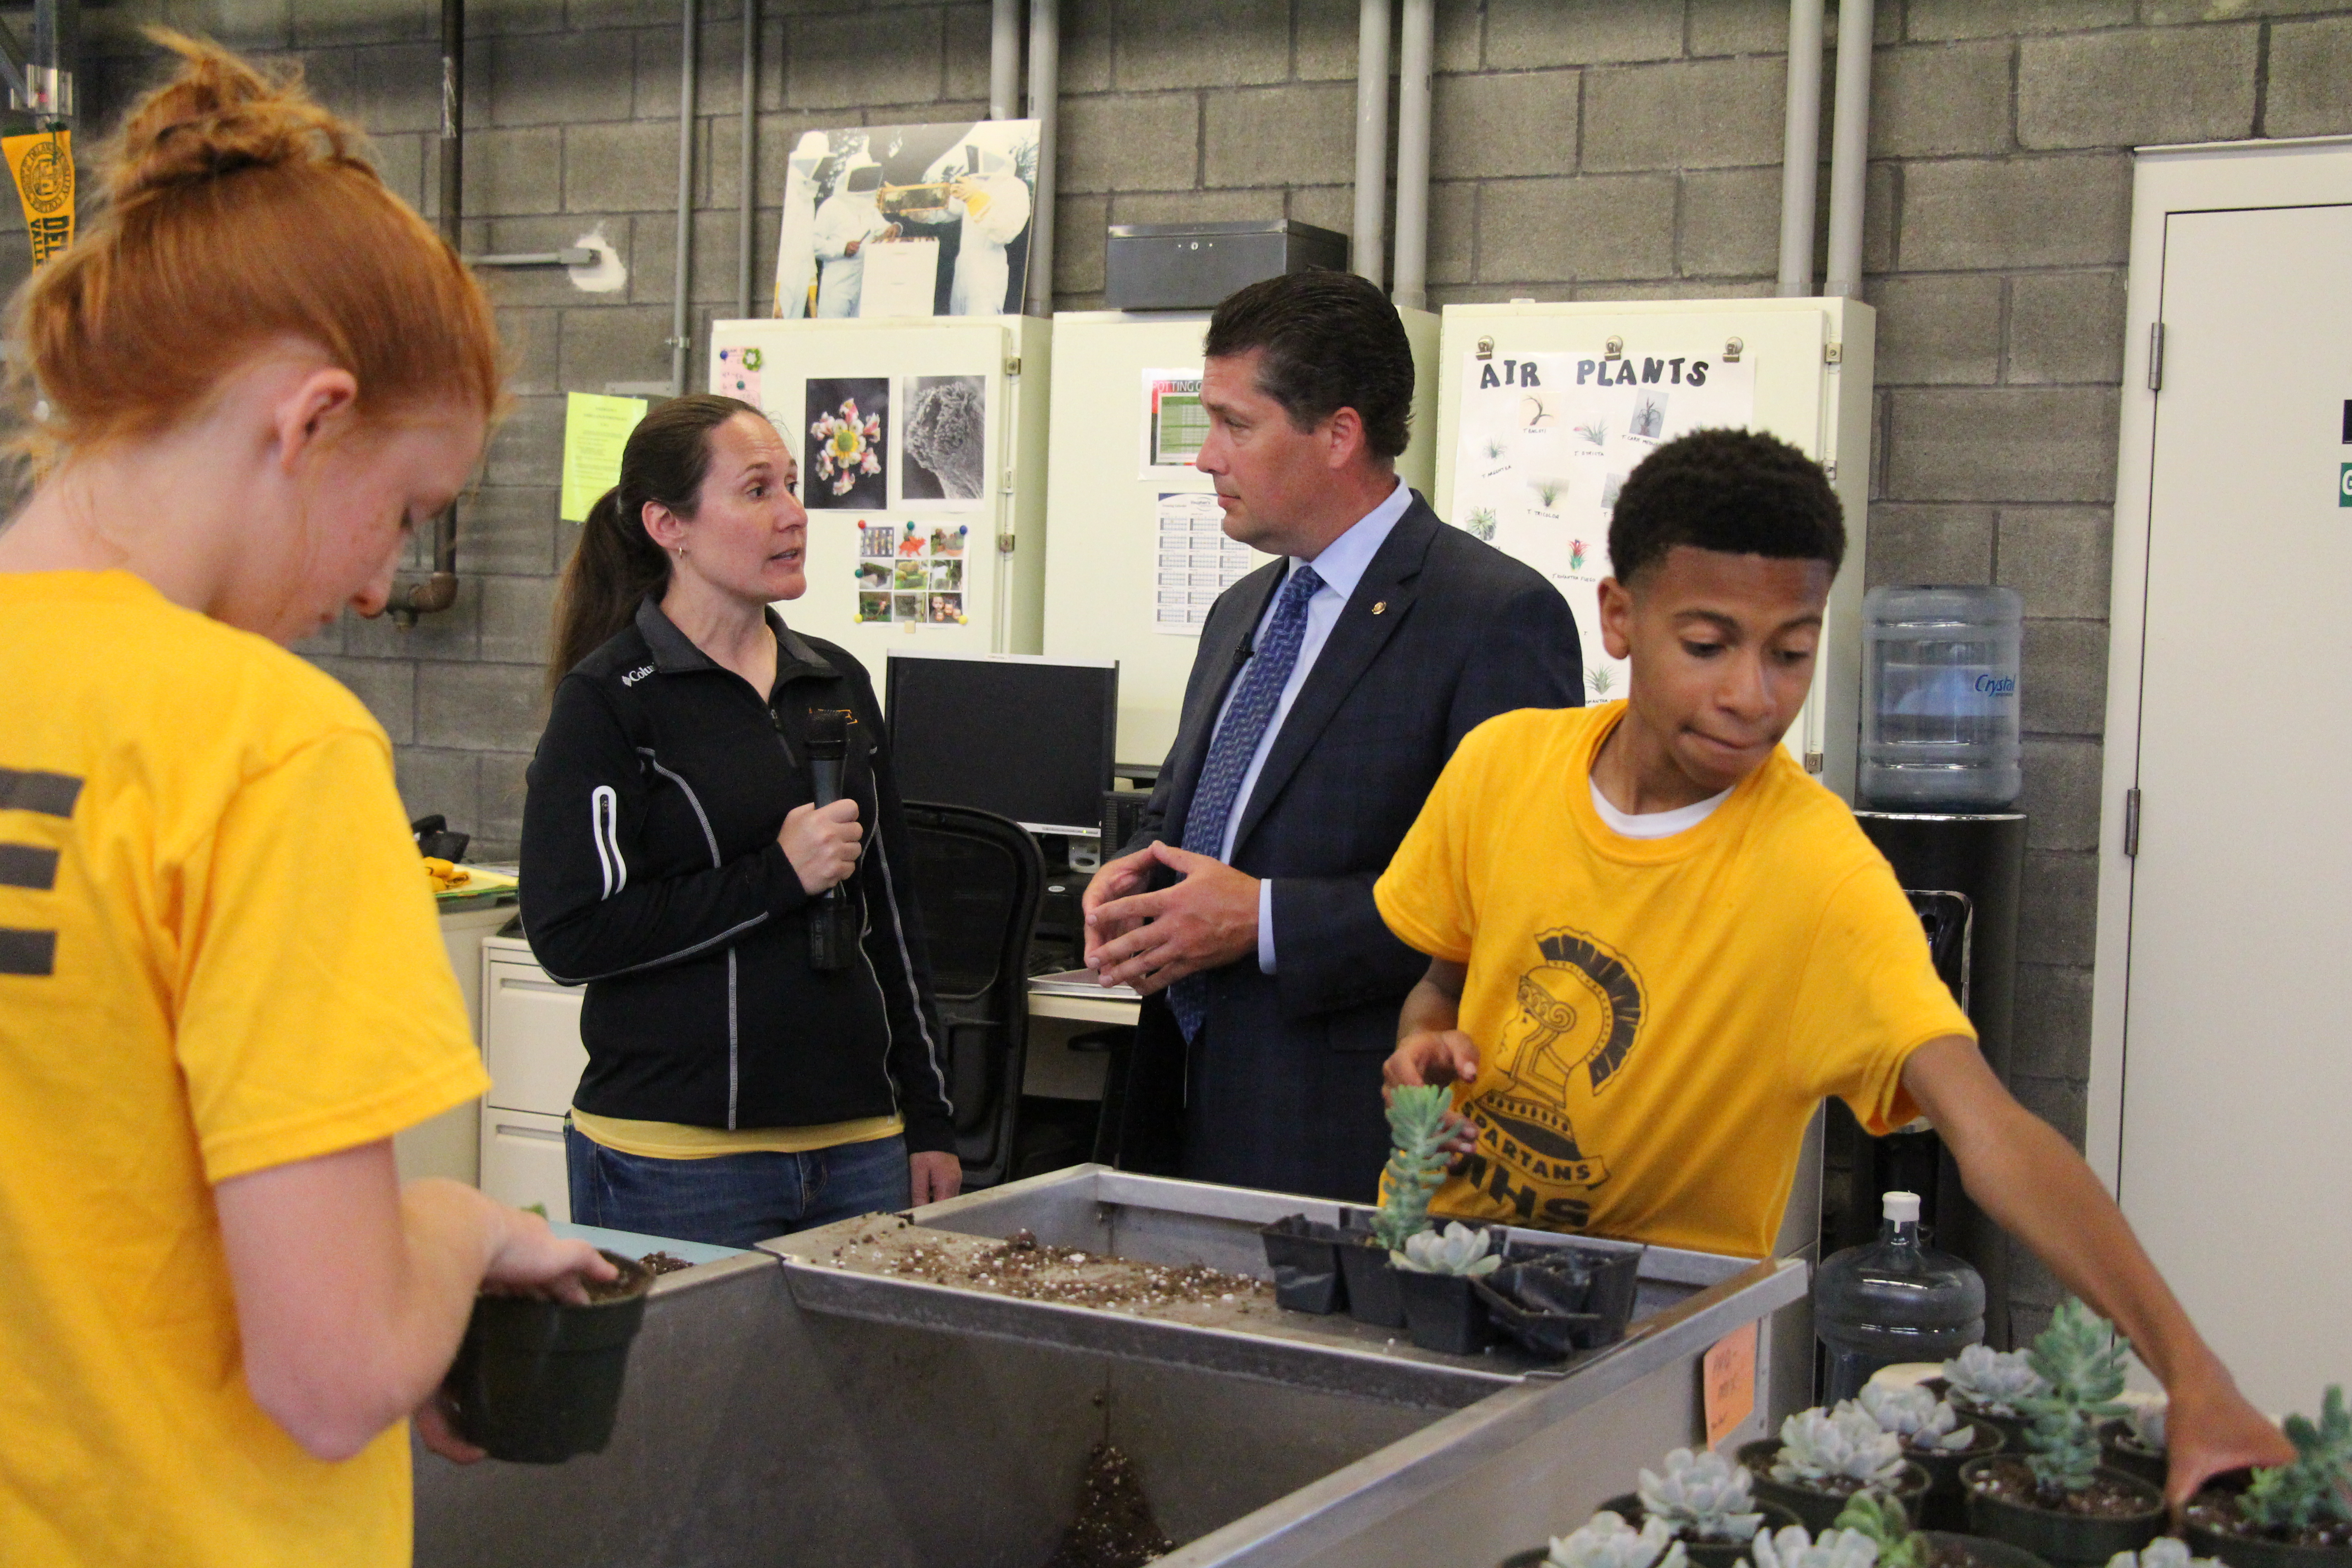 Pennsylvania State Representative Tom Mehaffie visited the Milton Hershey School campus this week to learn more about the school's student-run Project Market.